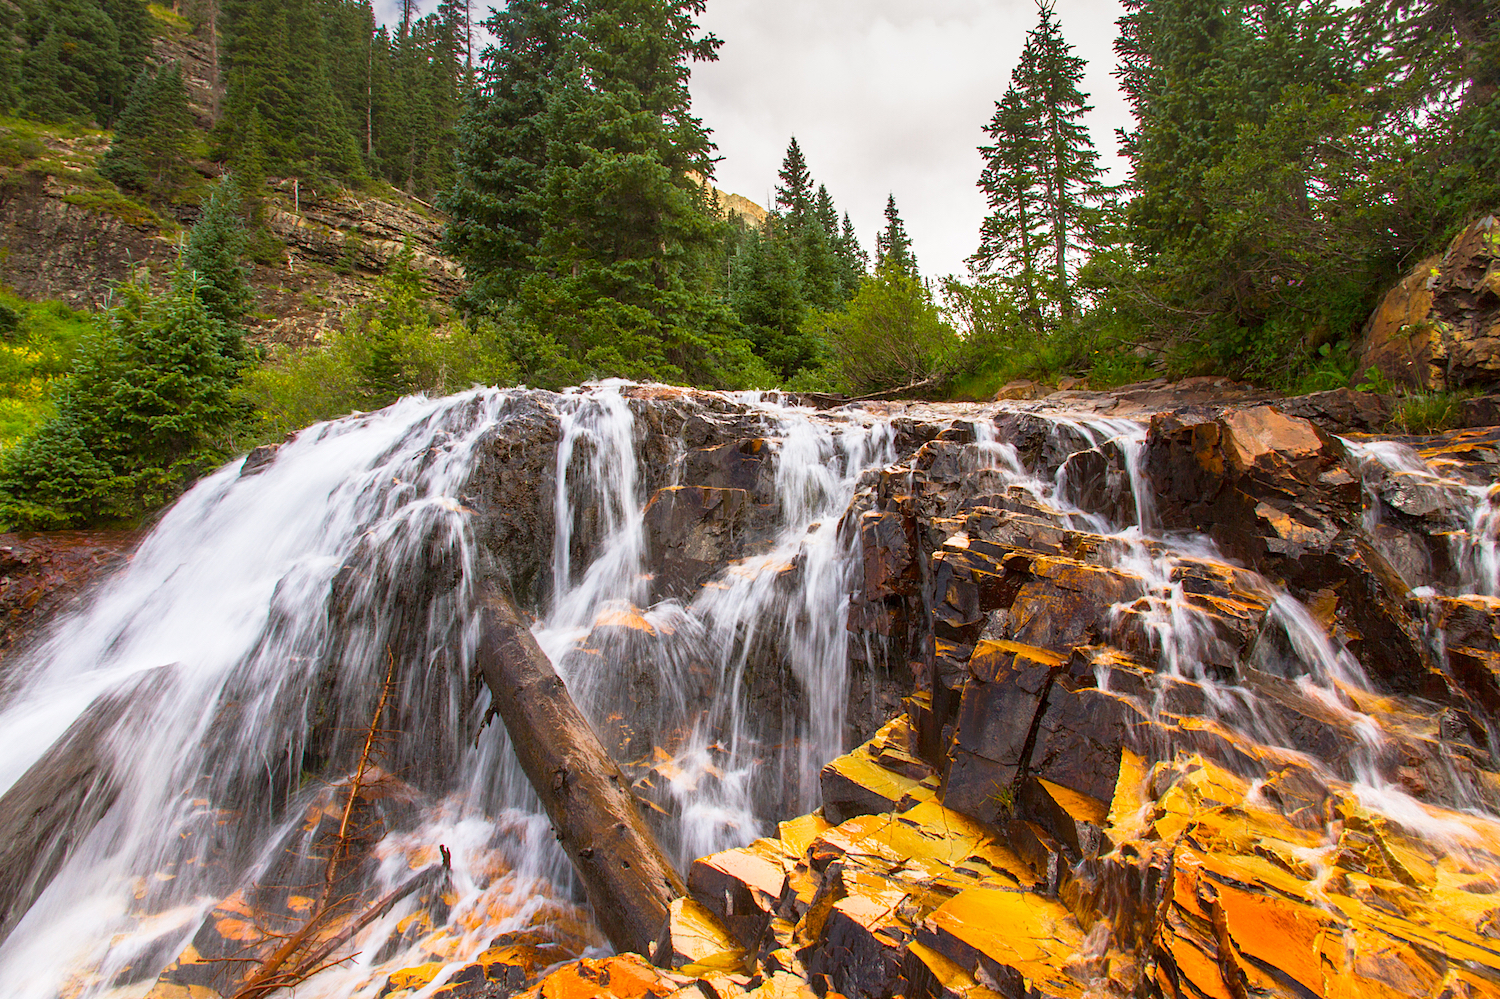 CASCADE DIVIDE WATERFALL, IMAGE # 5293